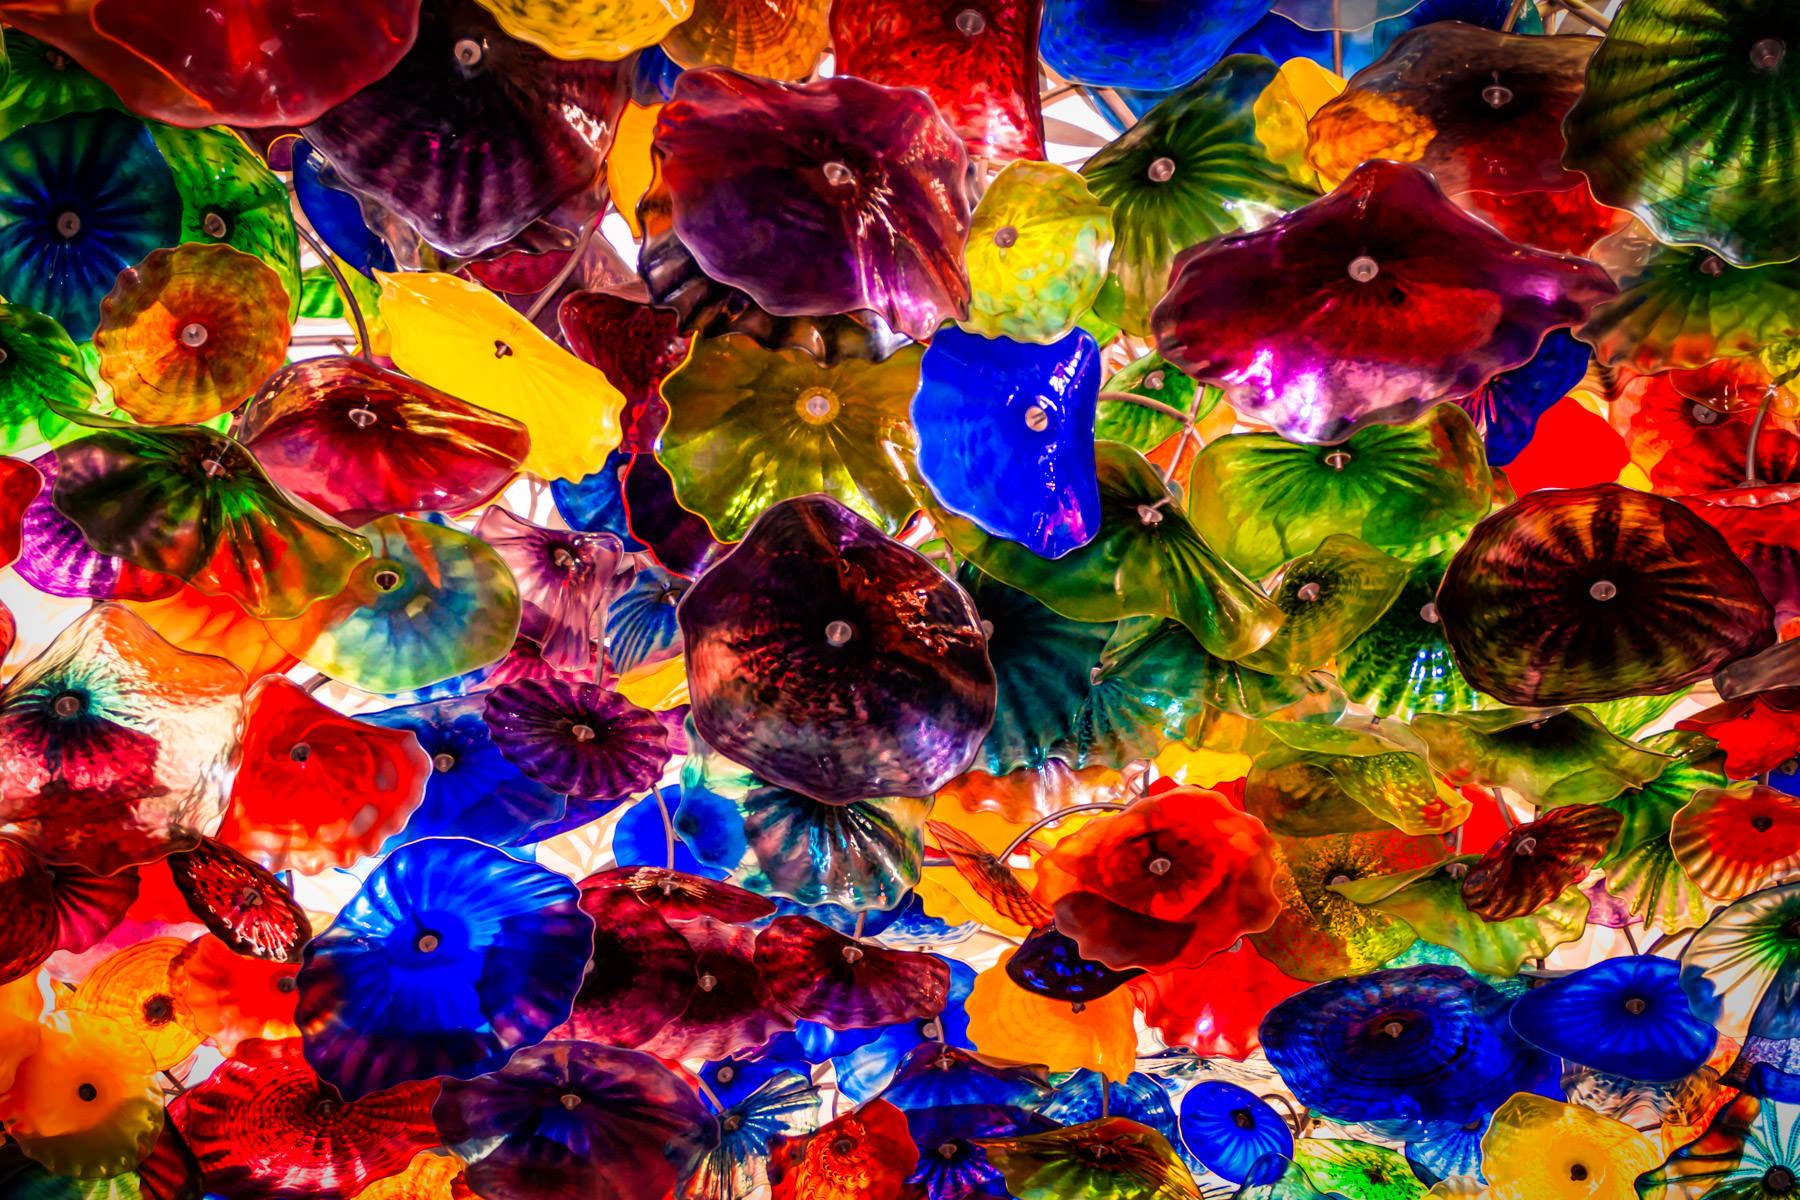 Glass artist Dale Chihuly's Fiori di Como, composed of over 2,000 hand-blown glass flowers, covers 2,000 square feet of the lobby ceiling inside Las Vegas' Bellagio Hotel and Casino.